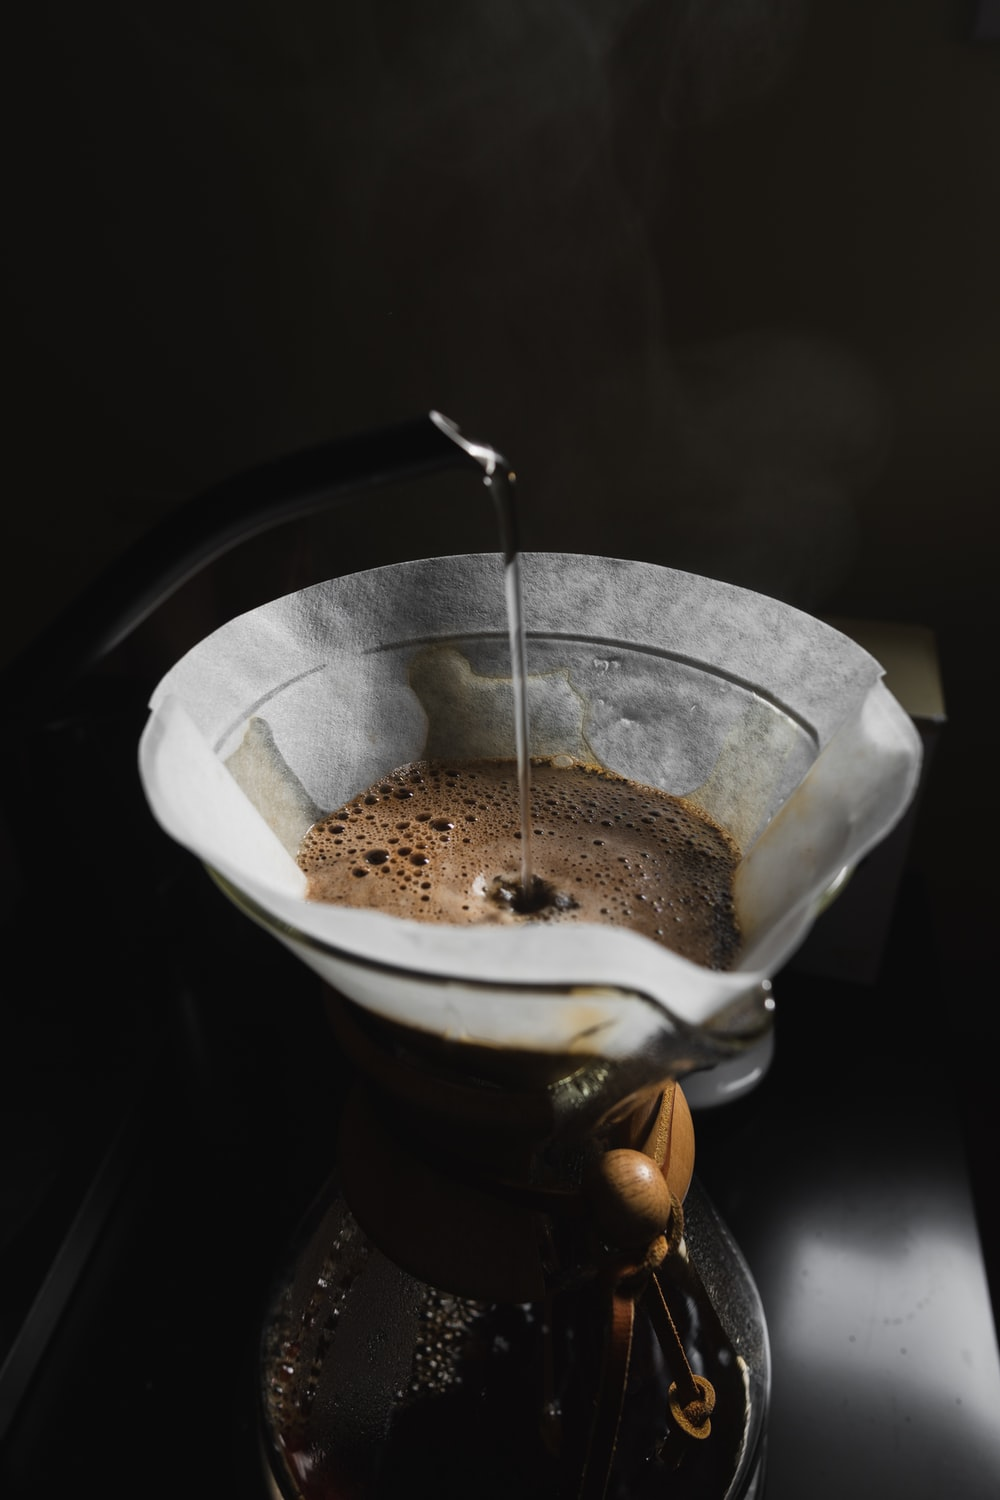 white and brown liquid in stainless steel cup